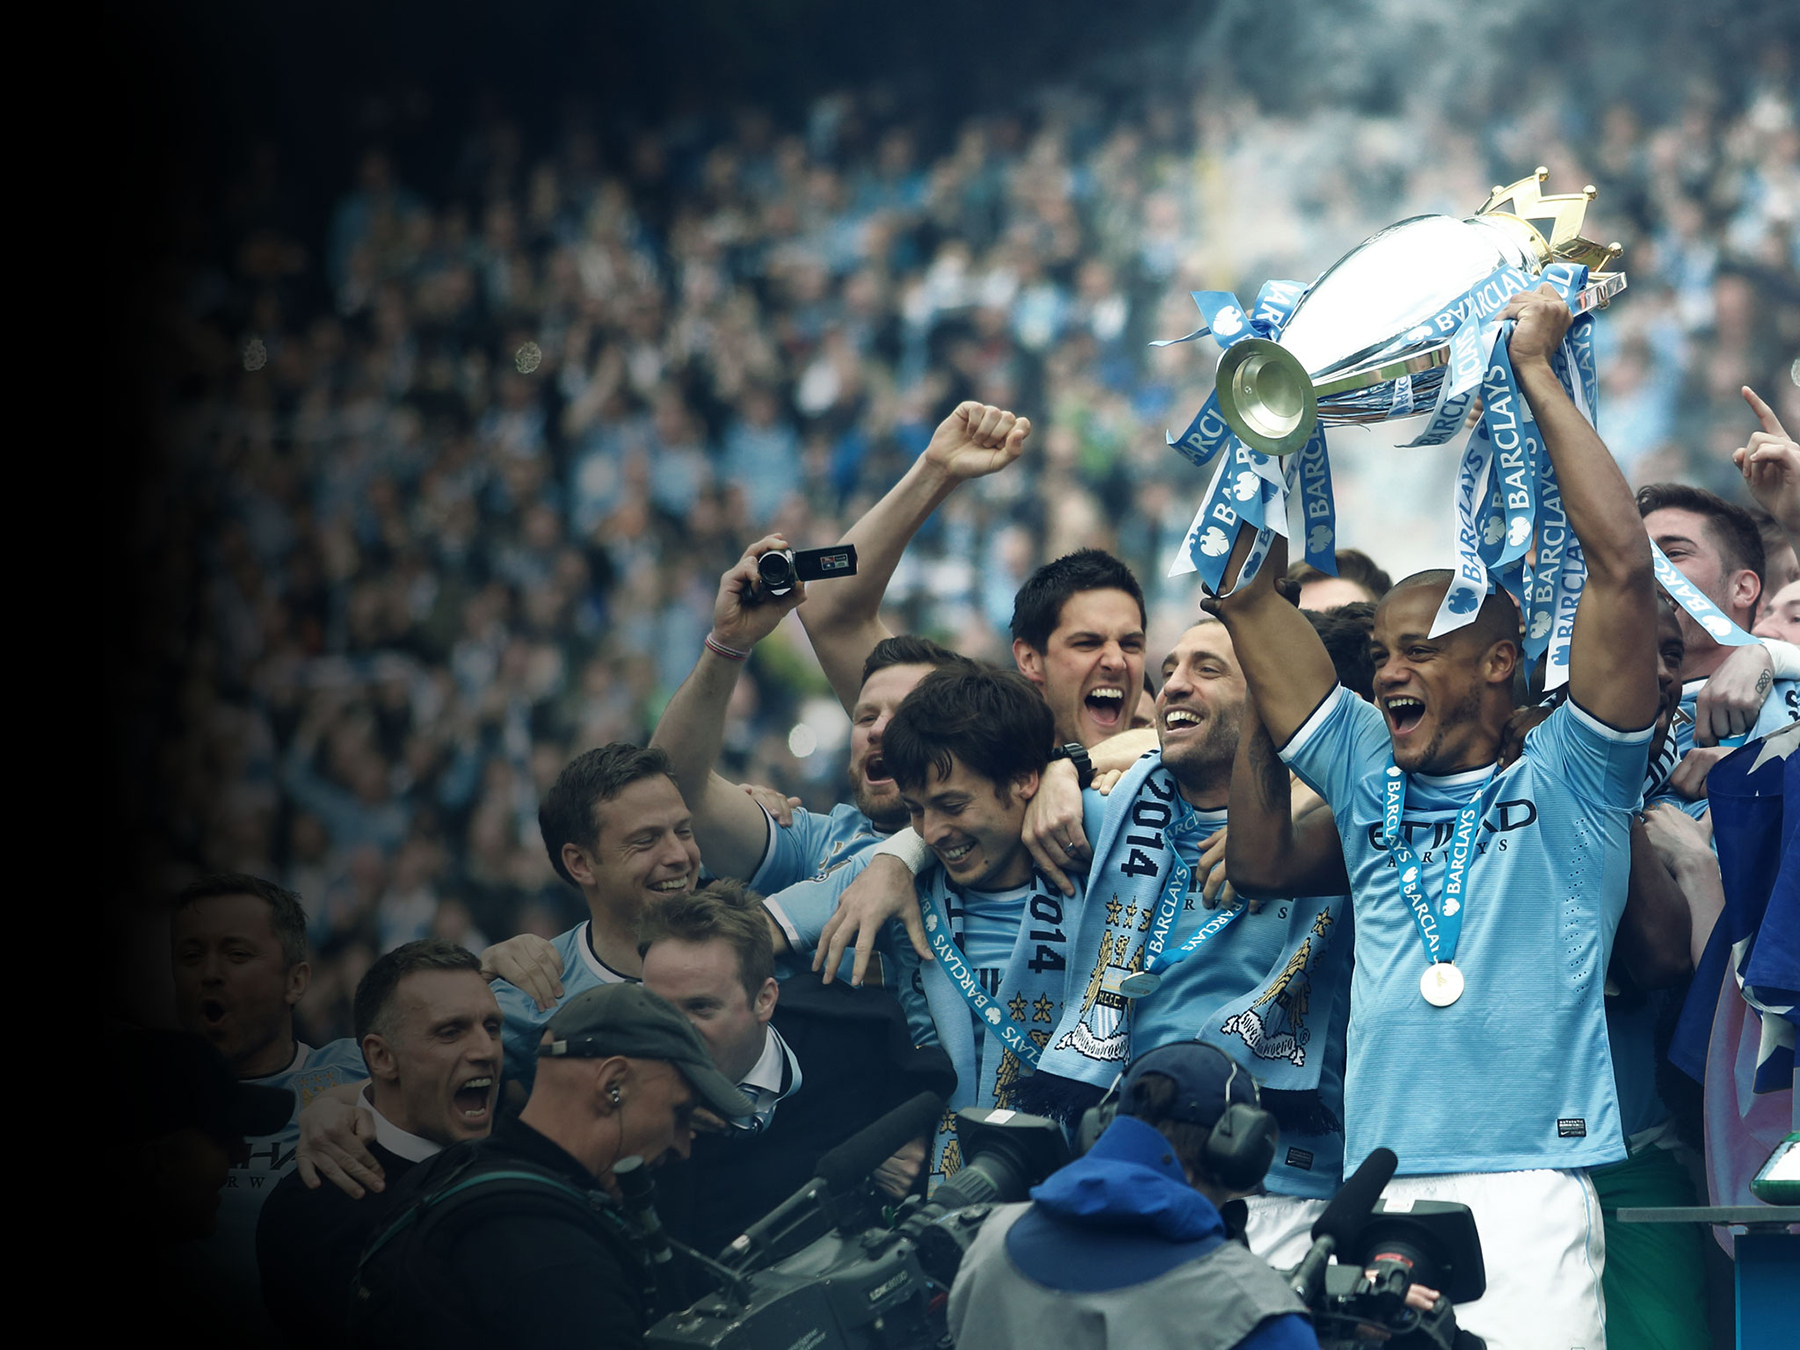 Former English Premier League Champions Manchester City FC are now part-owned by Chinese investors. Image courtesy Manchester City FC.